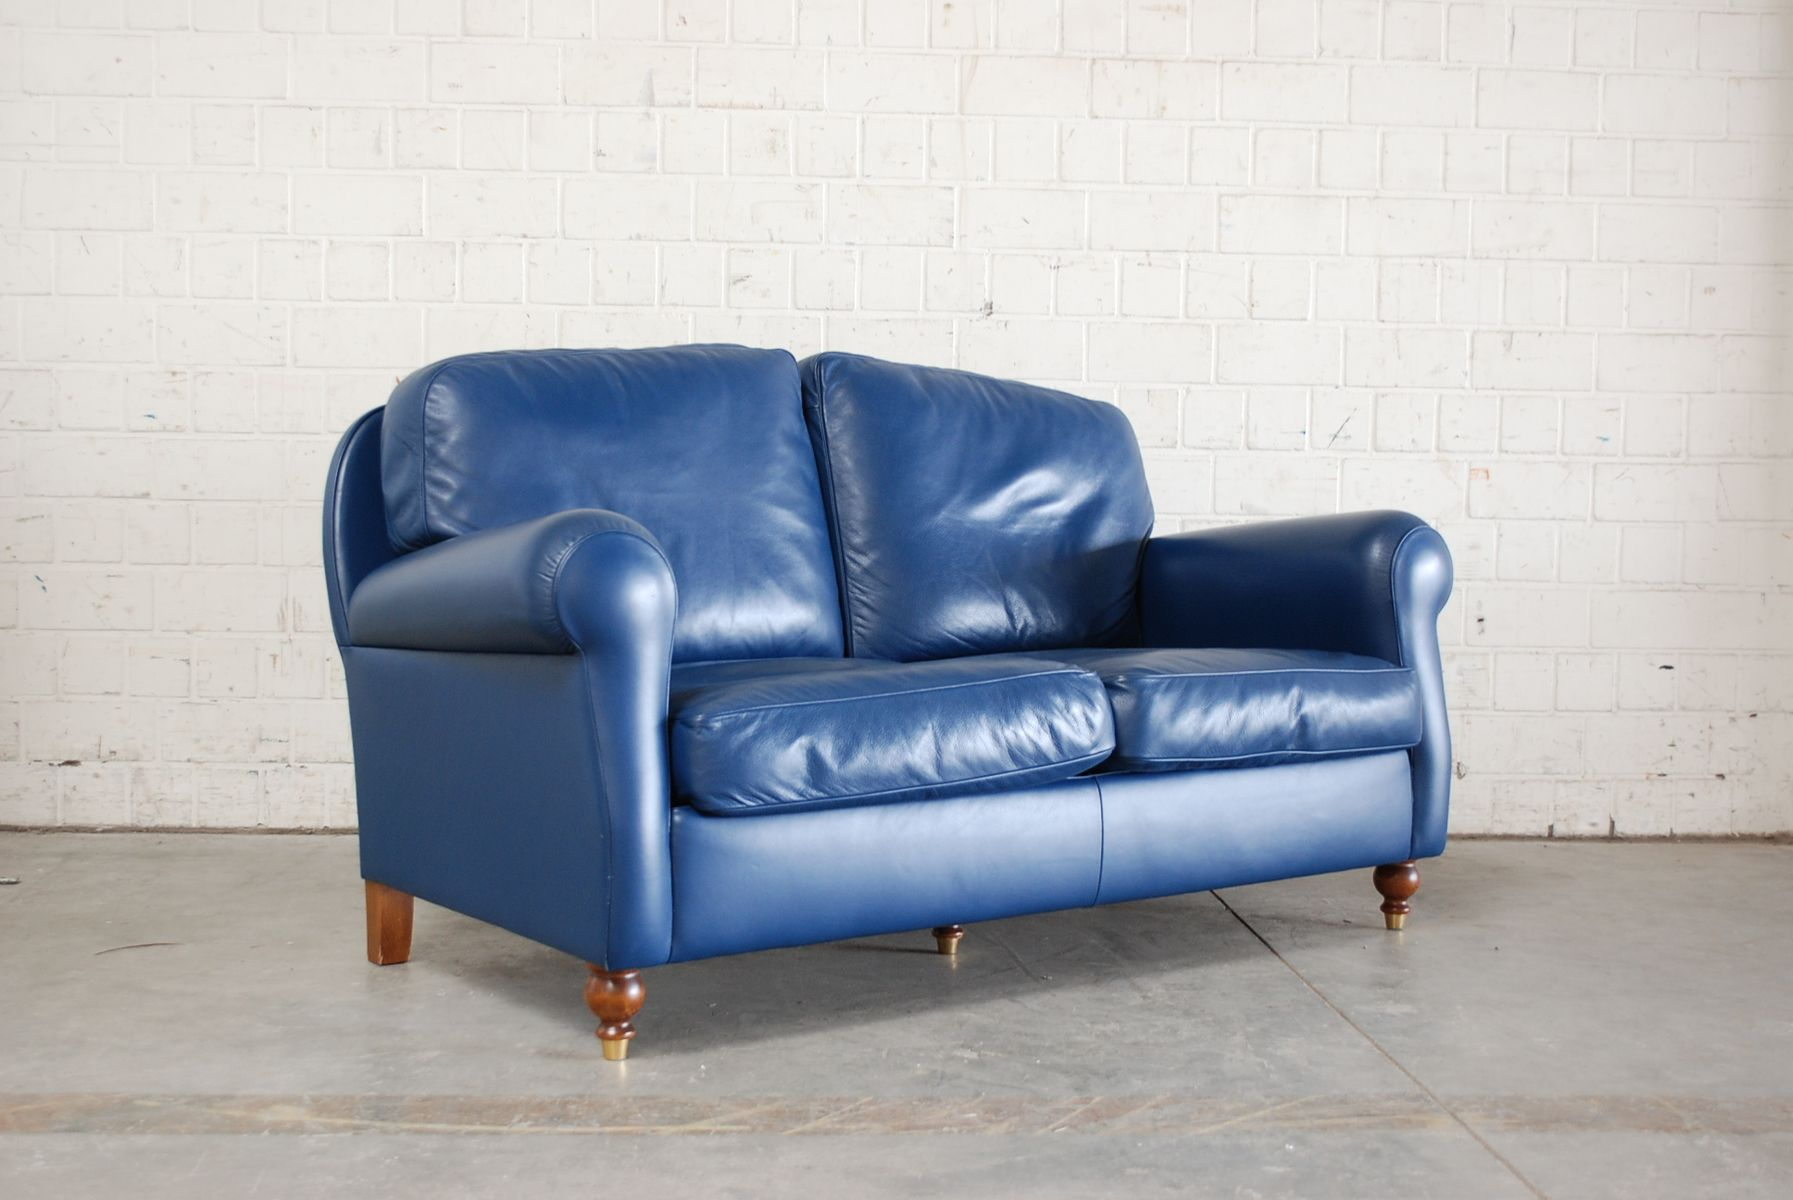 Blue leather george sofa from poltrona frau 1999 for sale for Blue couches for sale